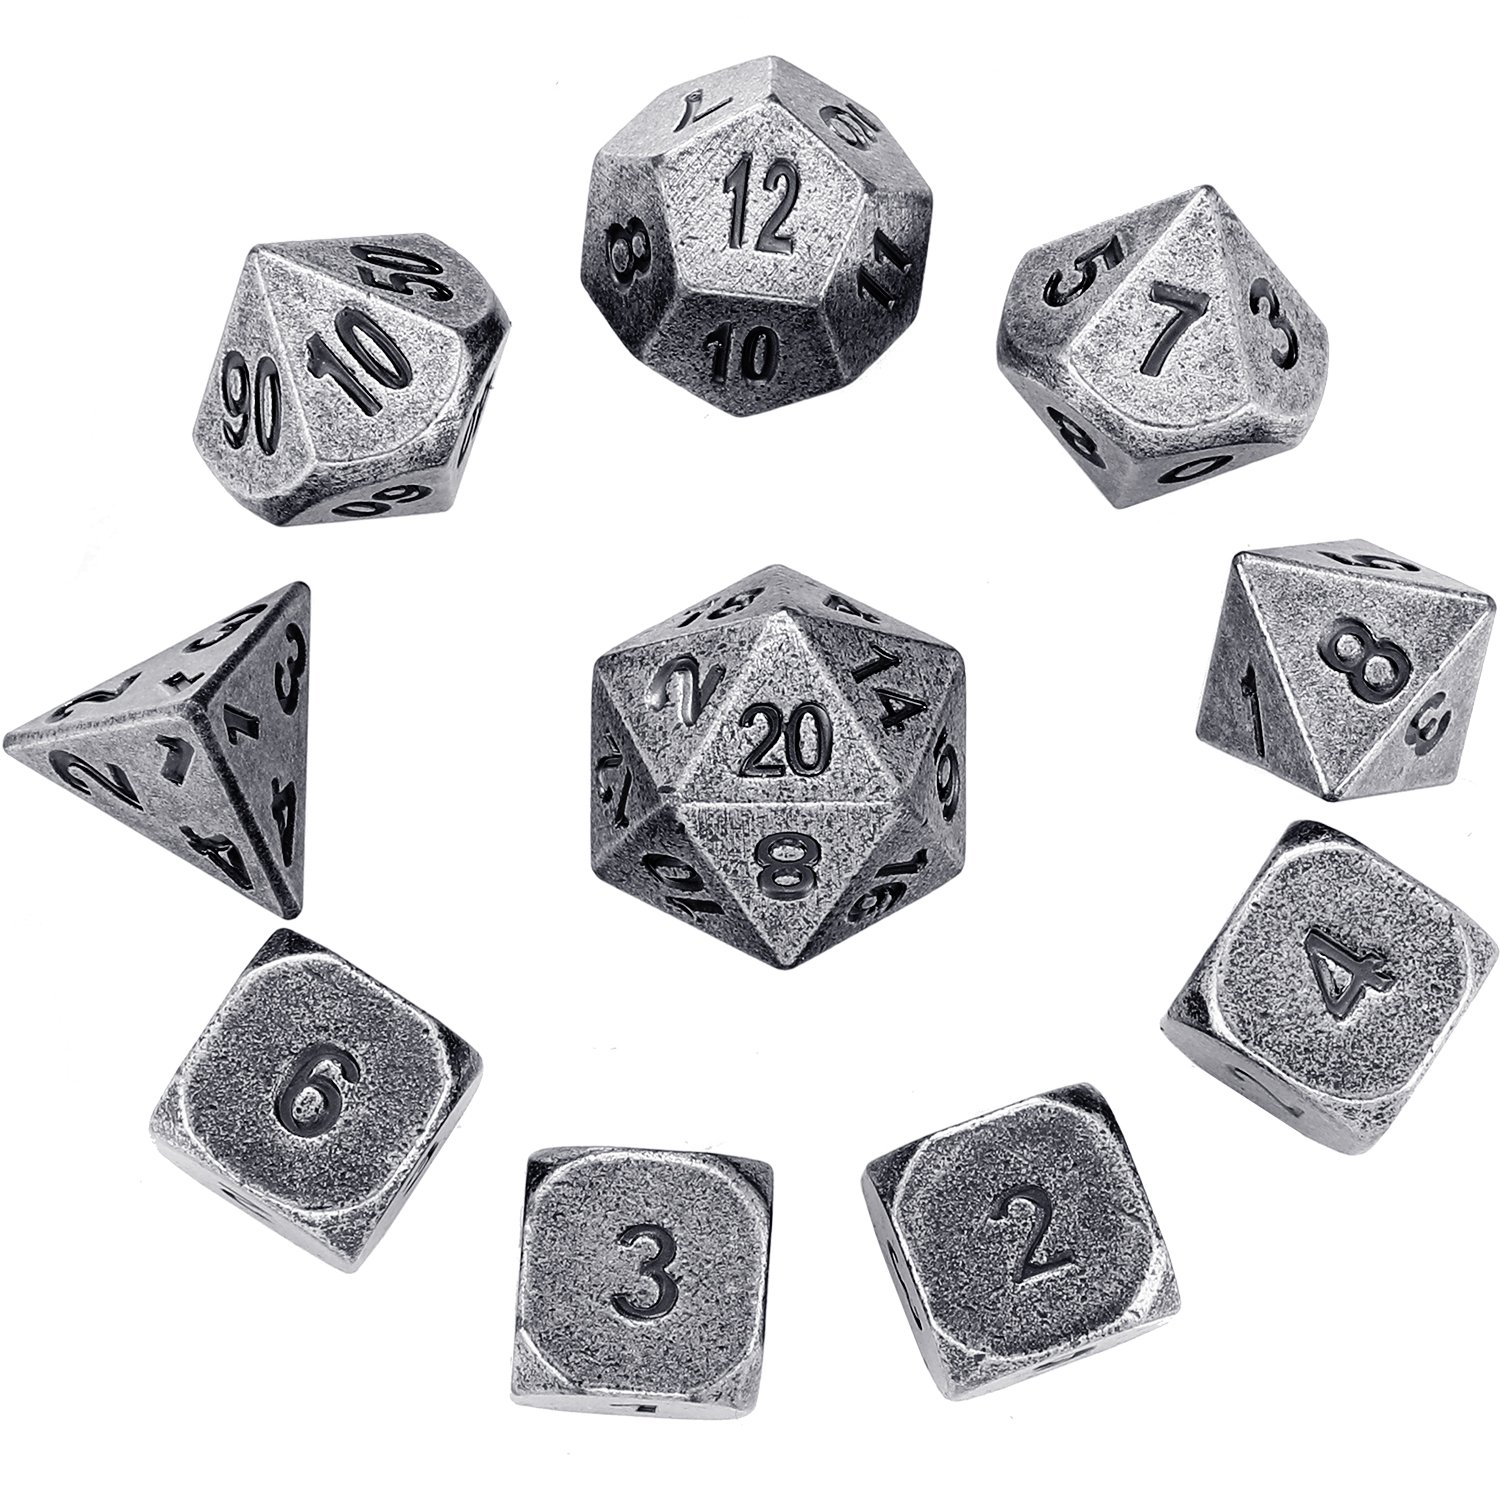 Hestya 10 Pieces Metal Dices Set DND Game Polyhedral Solid D&D Dice Set with Storage Bag and Zinc Alloy with Printed Numbers for Role Playing Game Dungeons and Dragons, Math Teaching (Silver Nickel) by Hestya